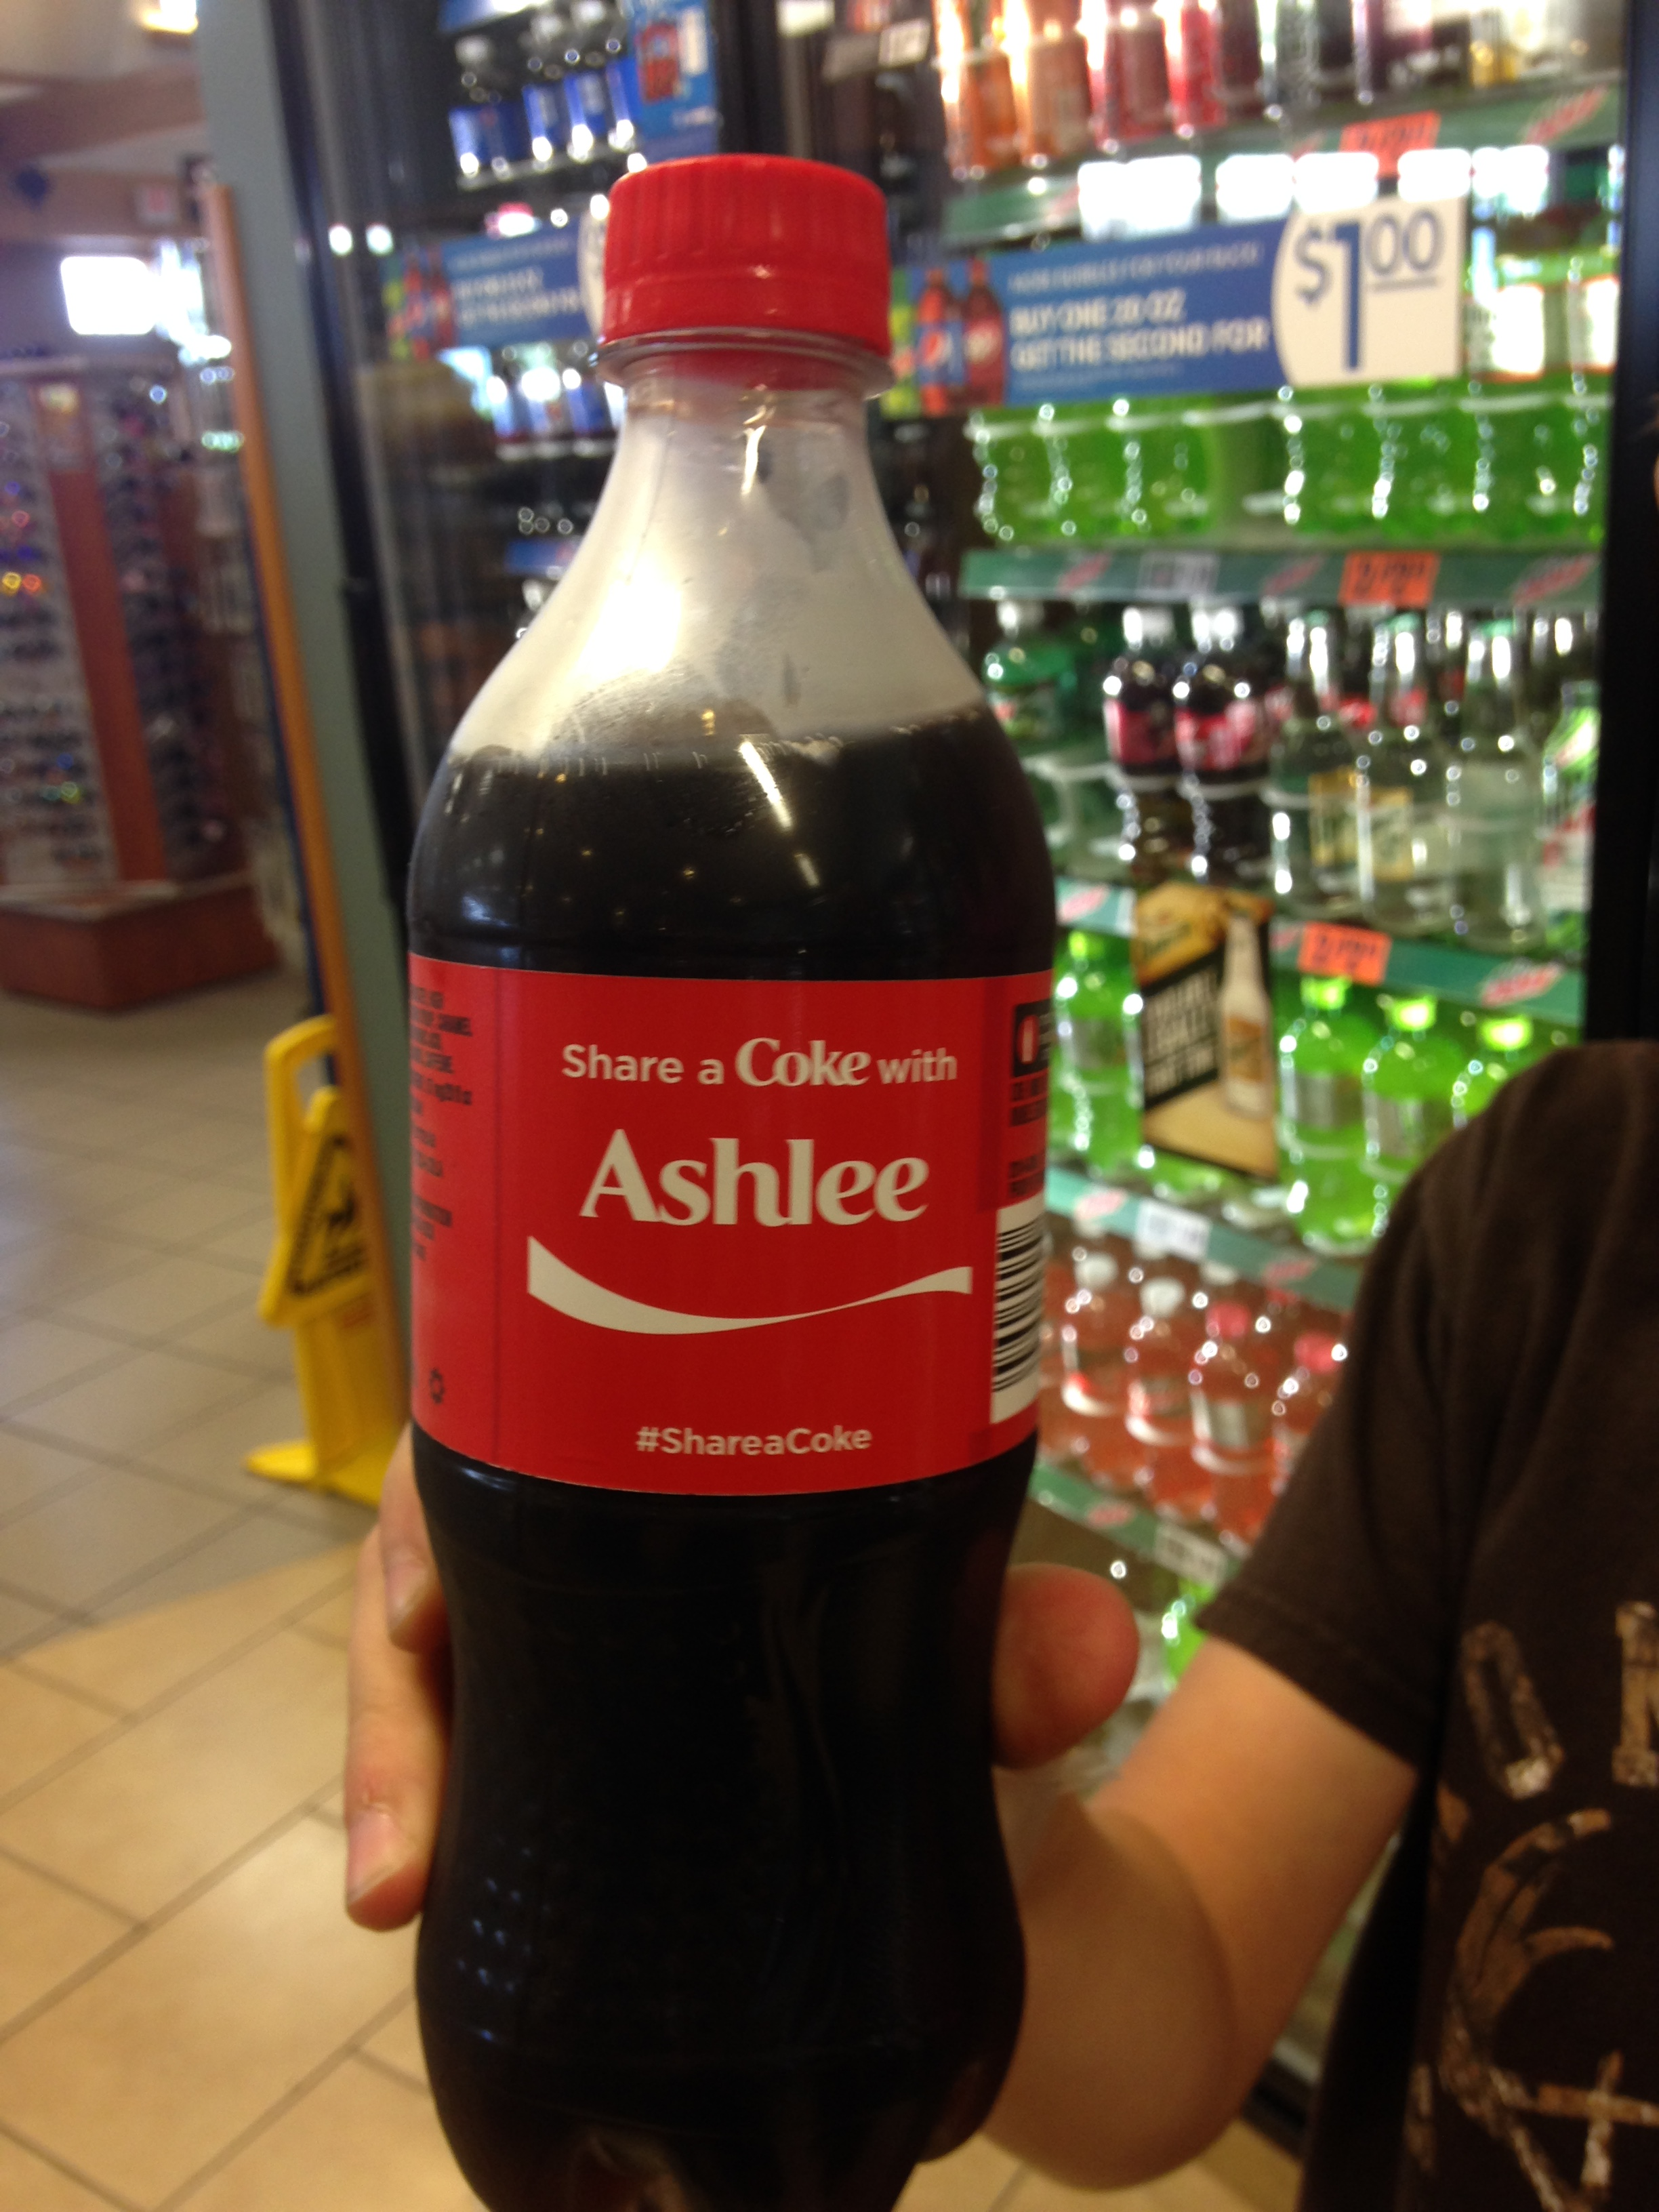 Share-a-Coke-with-Ashlee.jpg